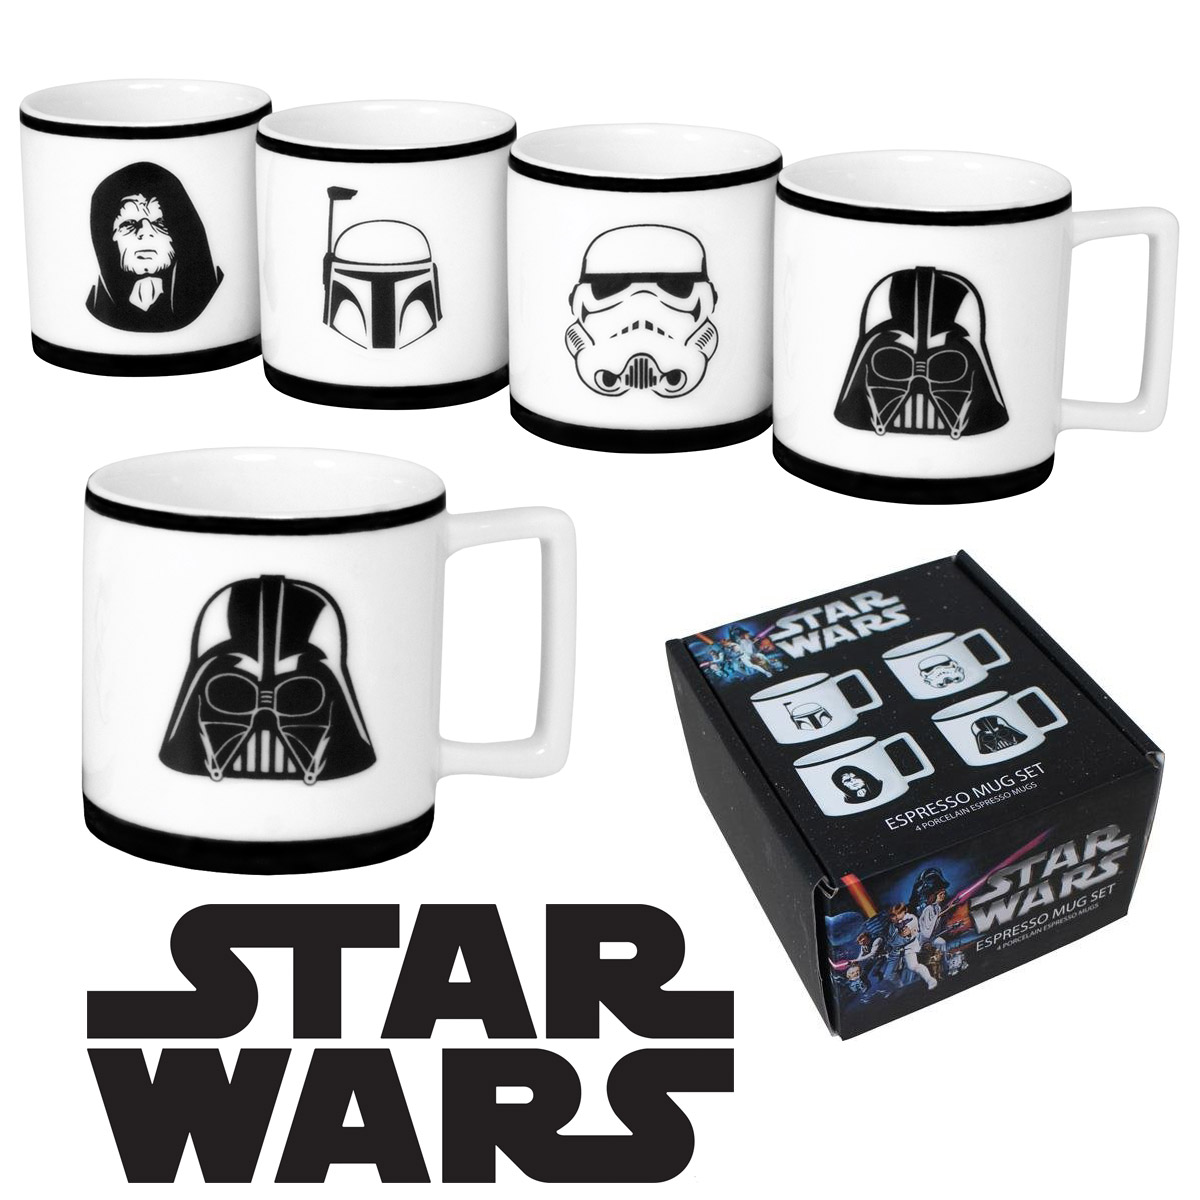 Cinq Mugs Star Wars Exclusivement Destinés Aux Vrais Fans